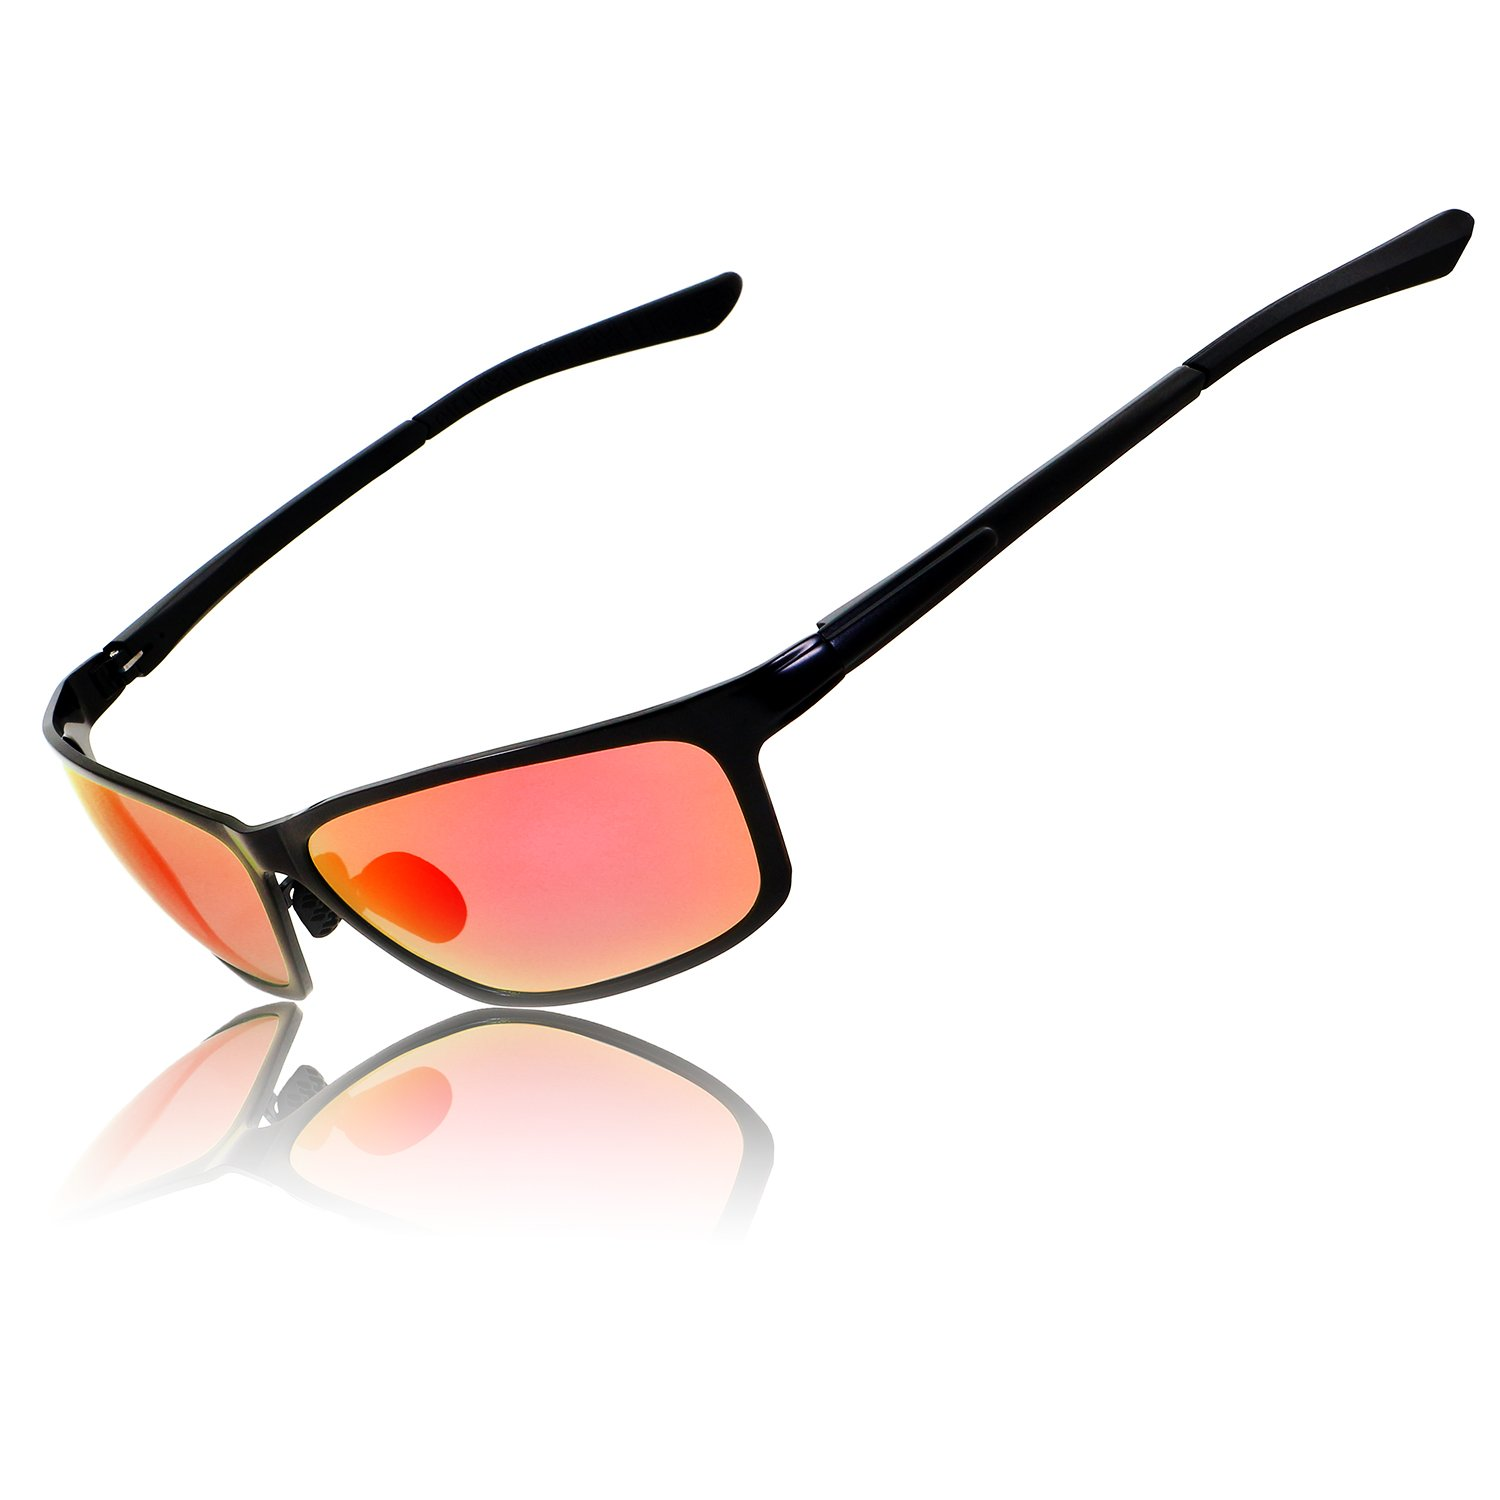 39293969e5eb Amazon.com: RONSOU Mens Sport Metal Polarized Sunglasses For Driving  Fishing Golf Outdoor with Gift Case black frame/red lens: Clothing